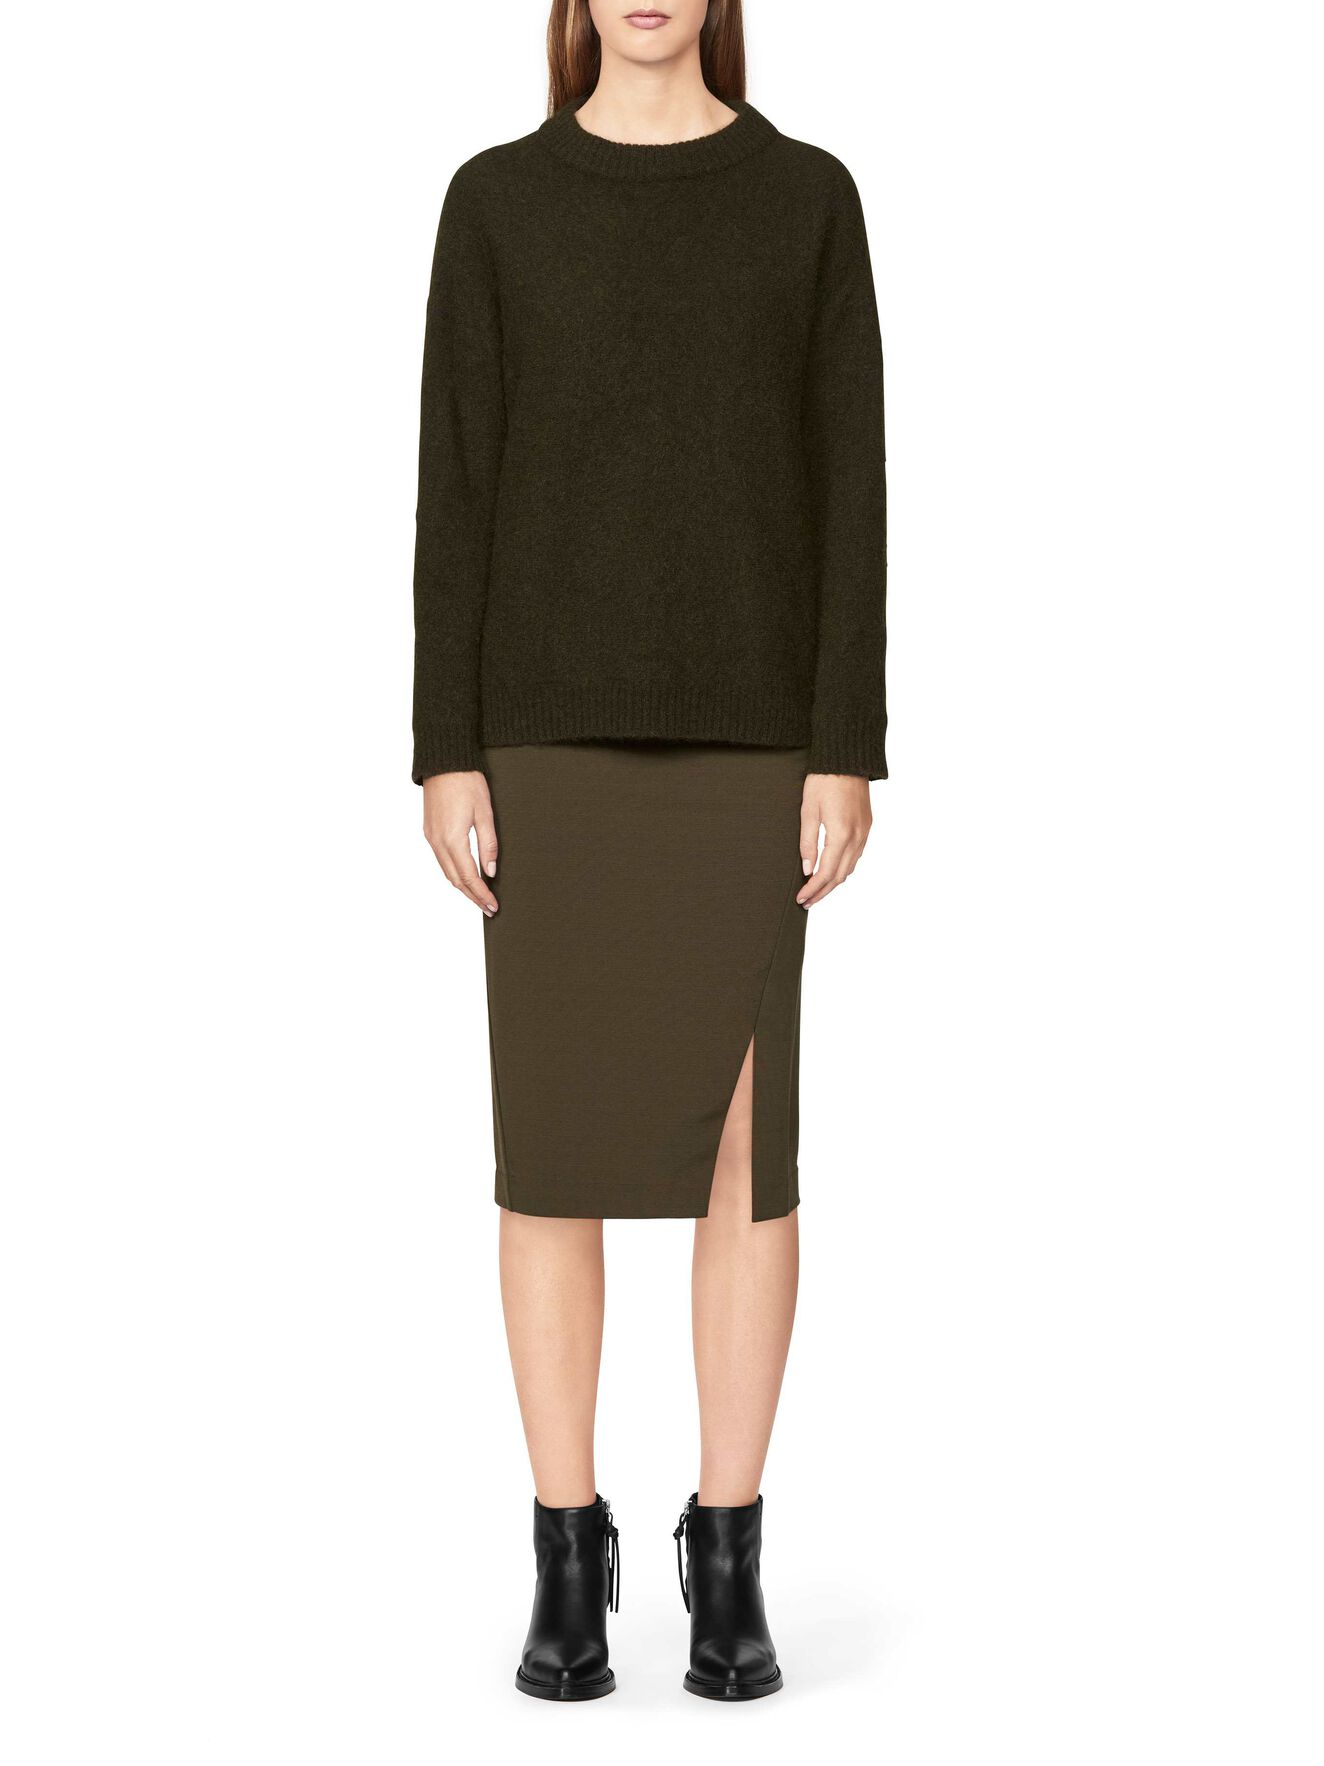 MITIS SKIRT in Utility Green from Tiger of Sweden